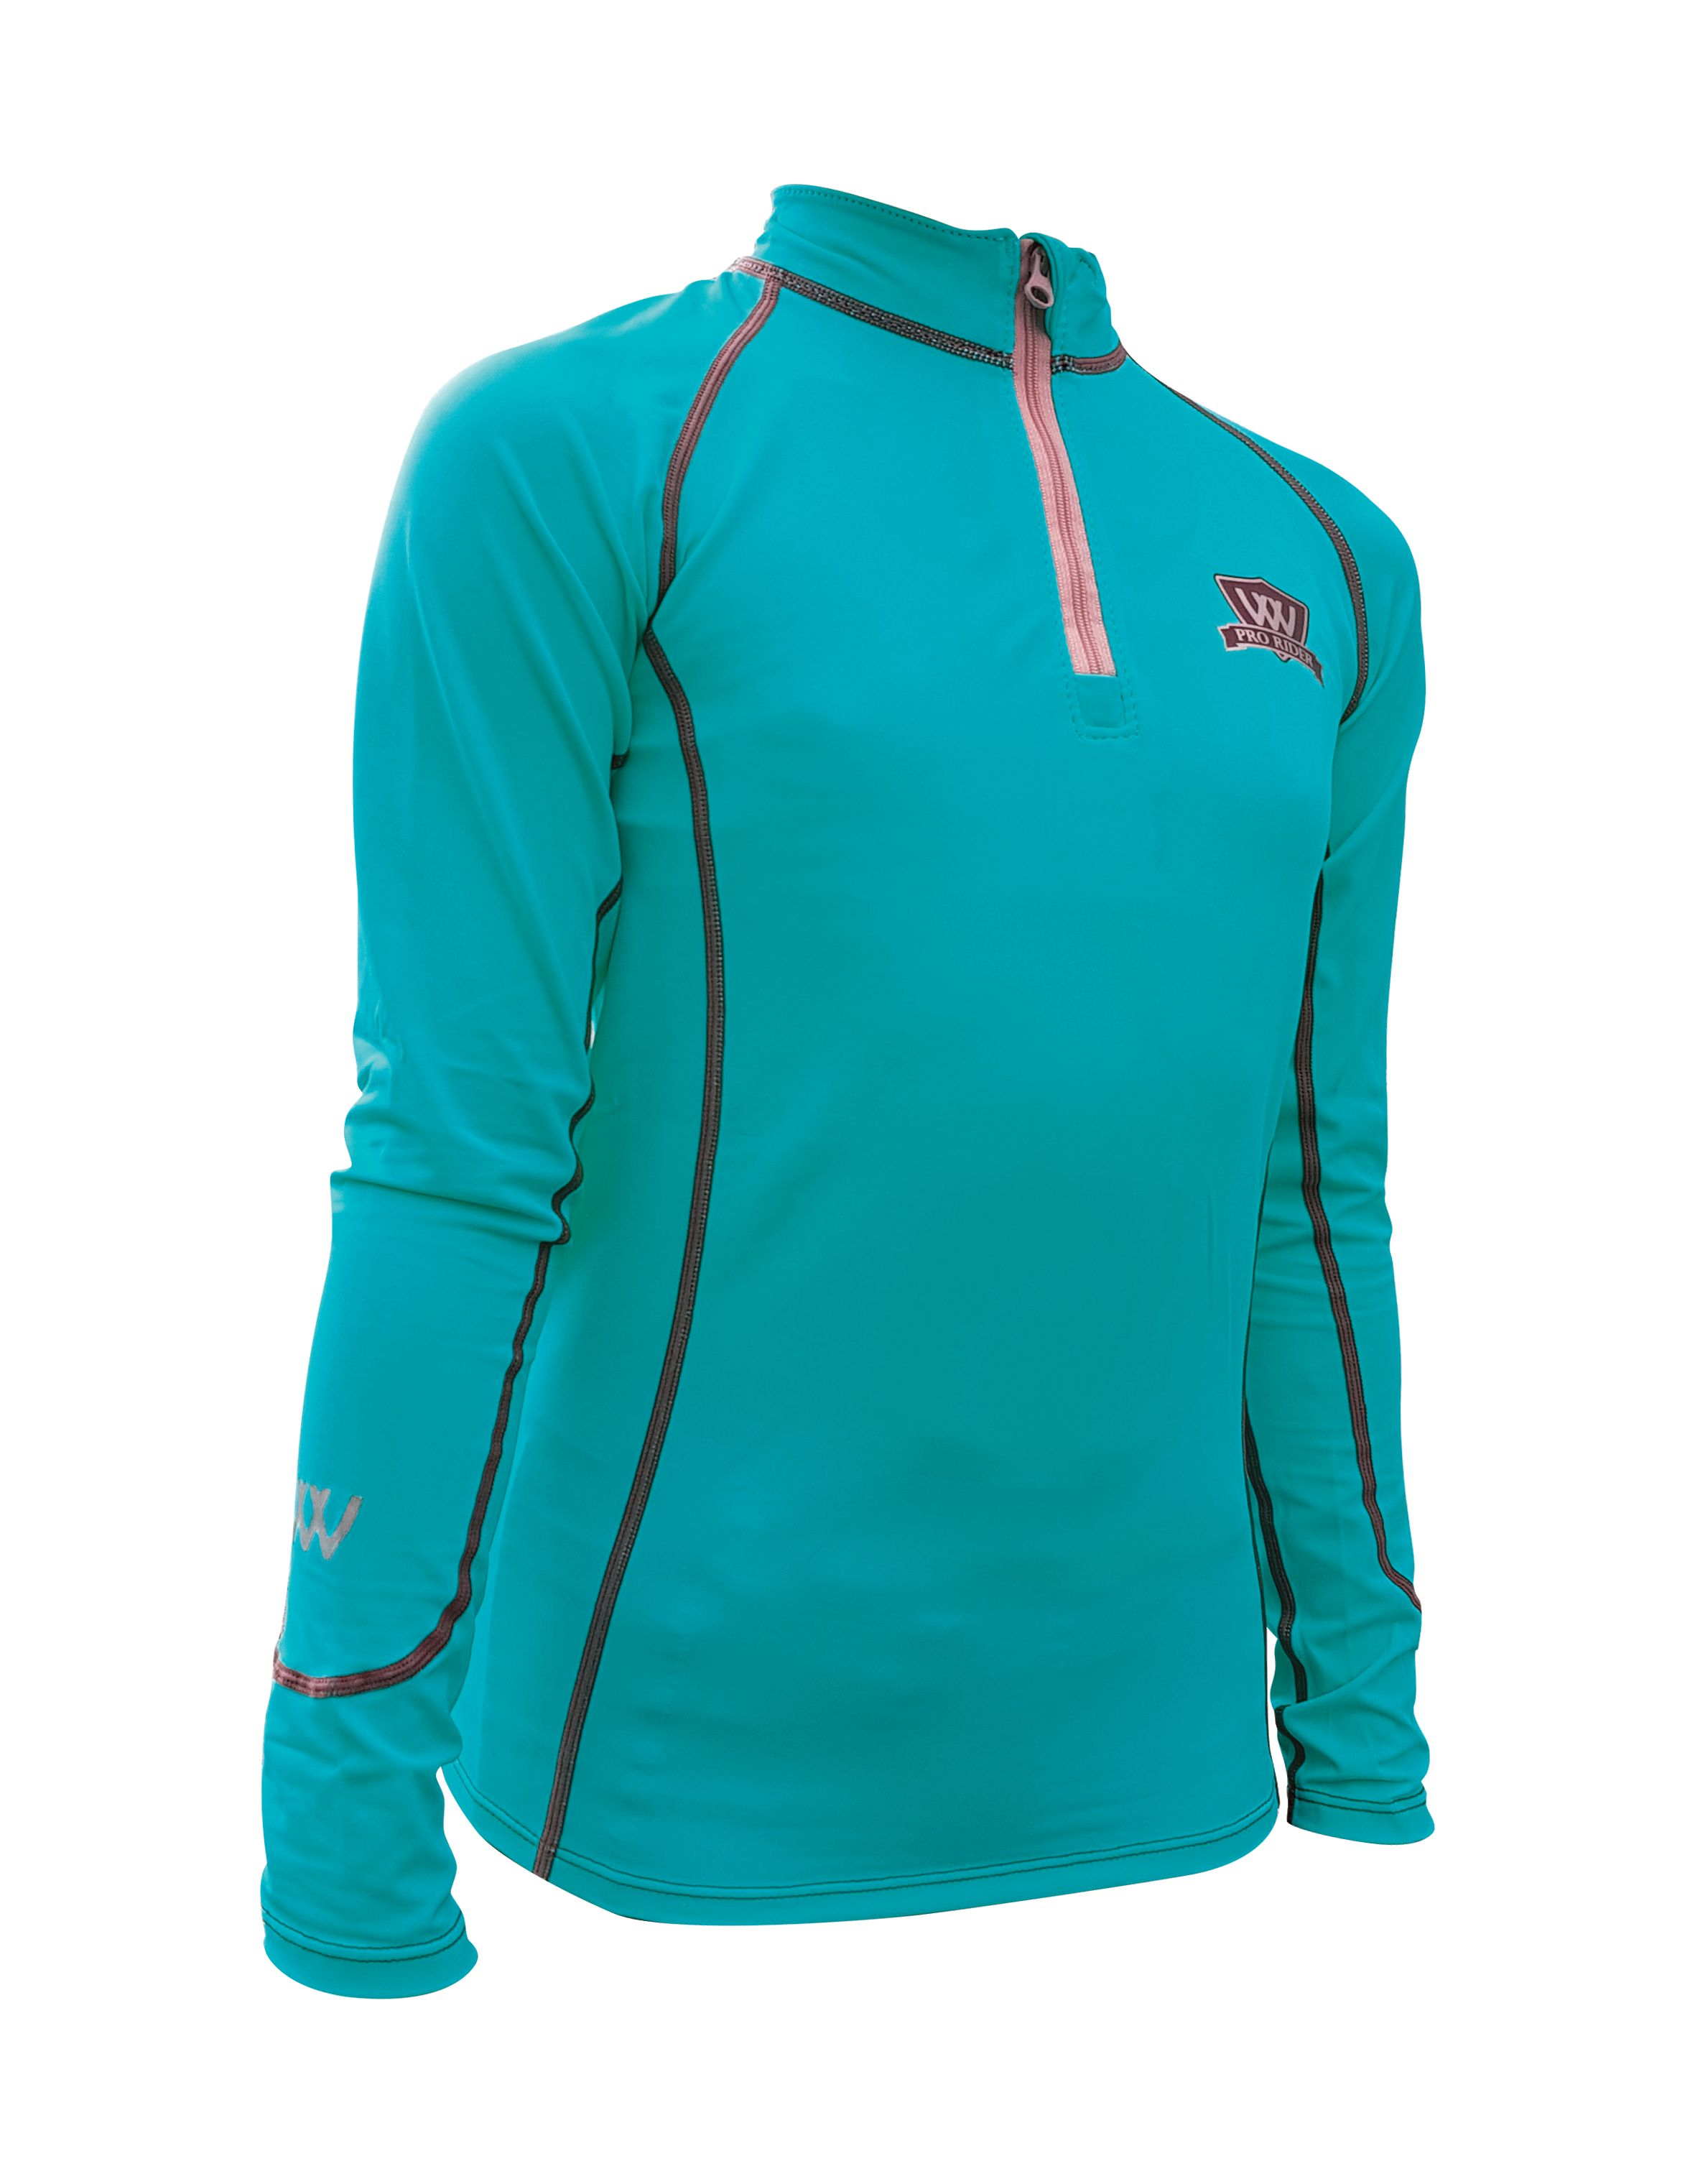 Woof Wear Young Riders Base Layer - Turquoise